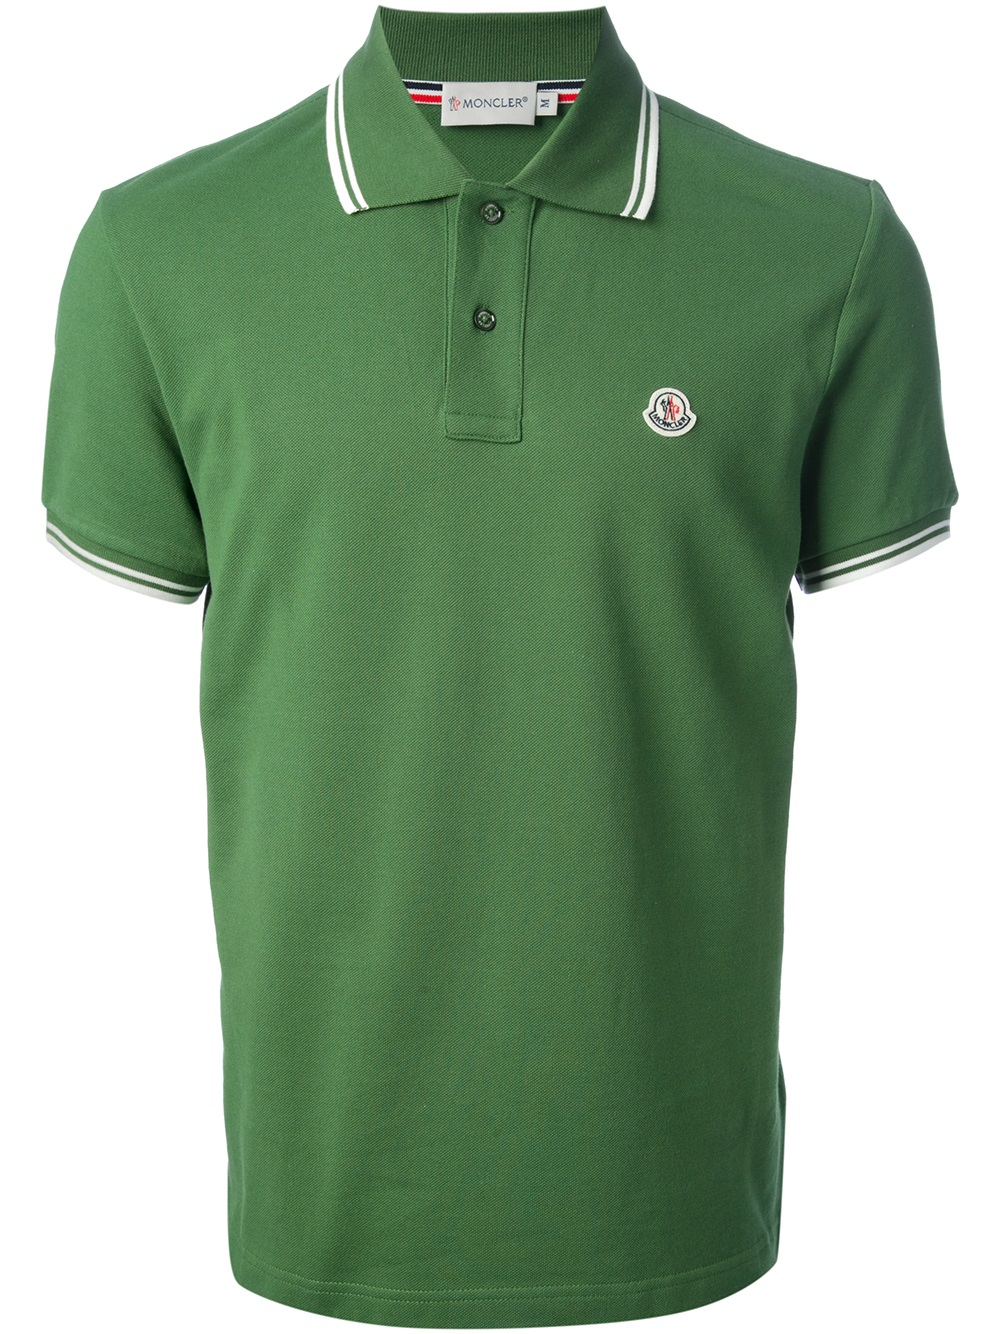 moncler striped trim polo shirt in green for men lyst. Black Bedroom Furniture Sets. Home Design Ideas